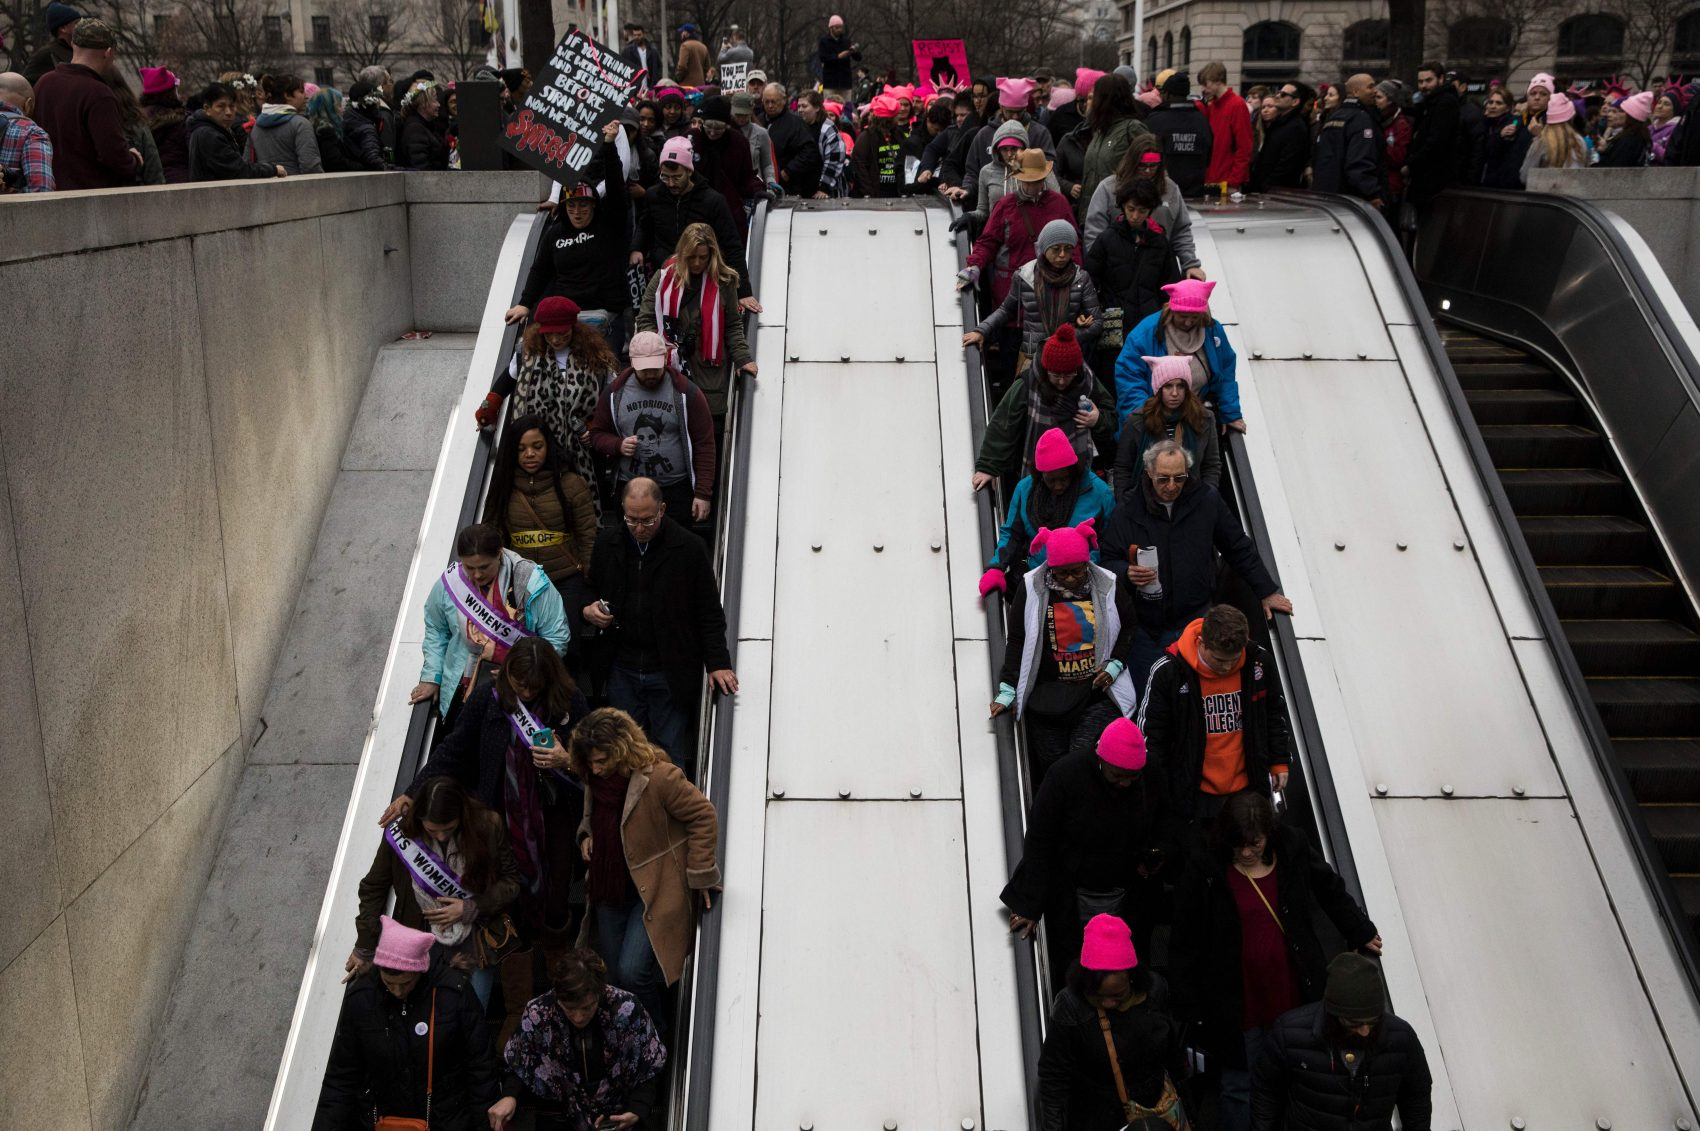 People make their way onto the National Archives Metro elevators during the Women's March on Washington Jan. 21, 2017 in Washington. (Zach Gibson/AFP/Getty Images)